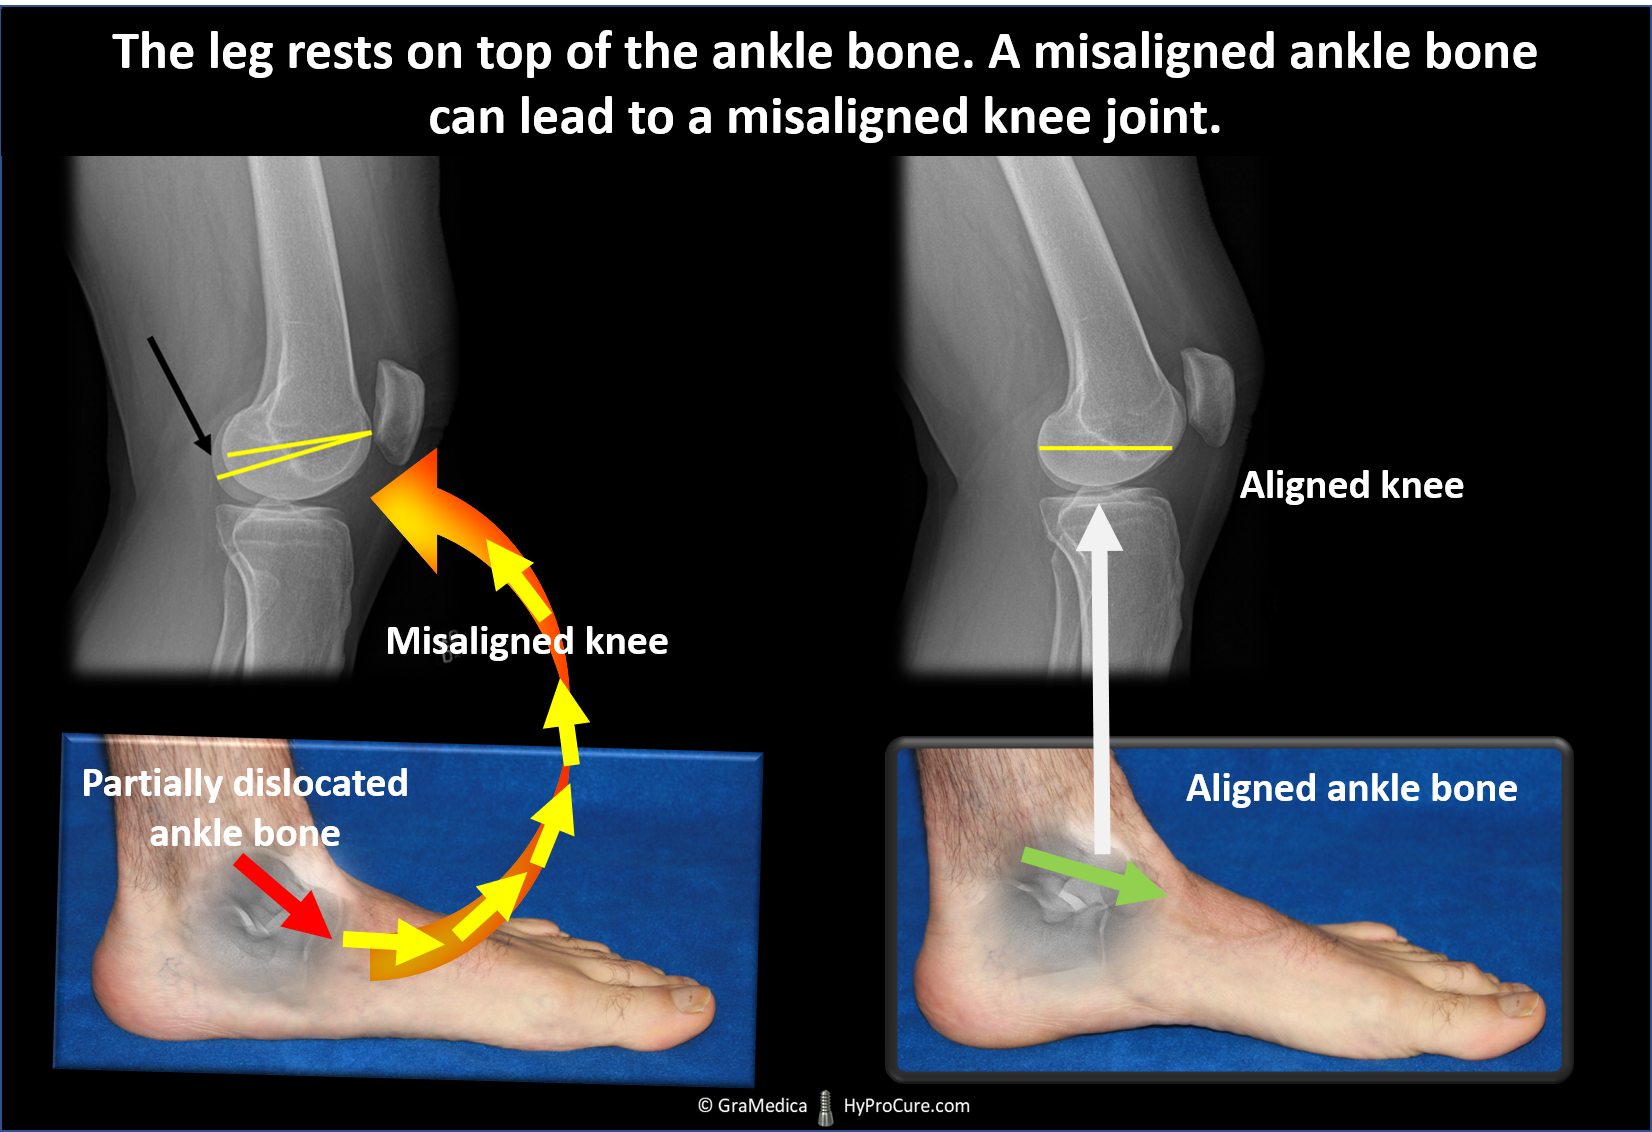 A misaligned ankle bone can lead to a misaligned knee joint